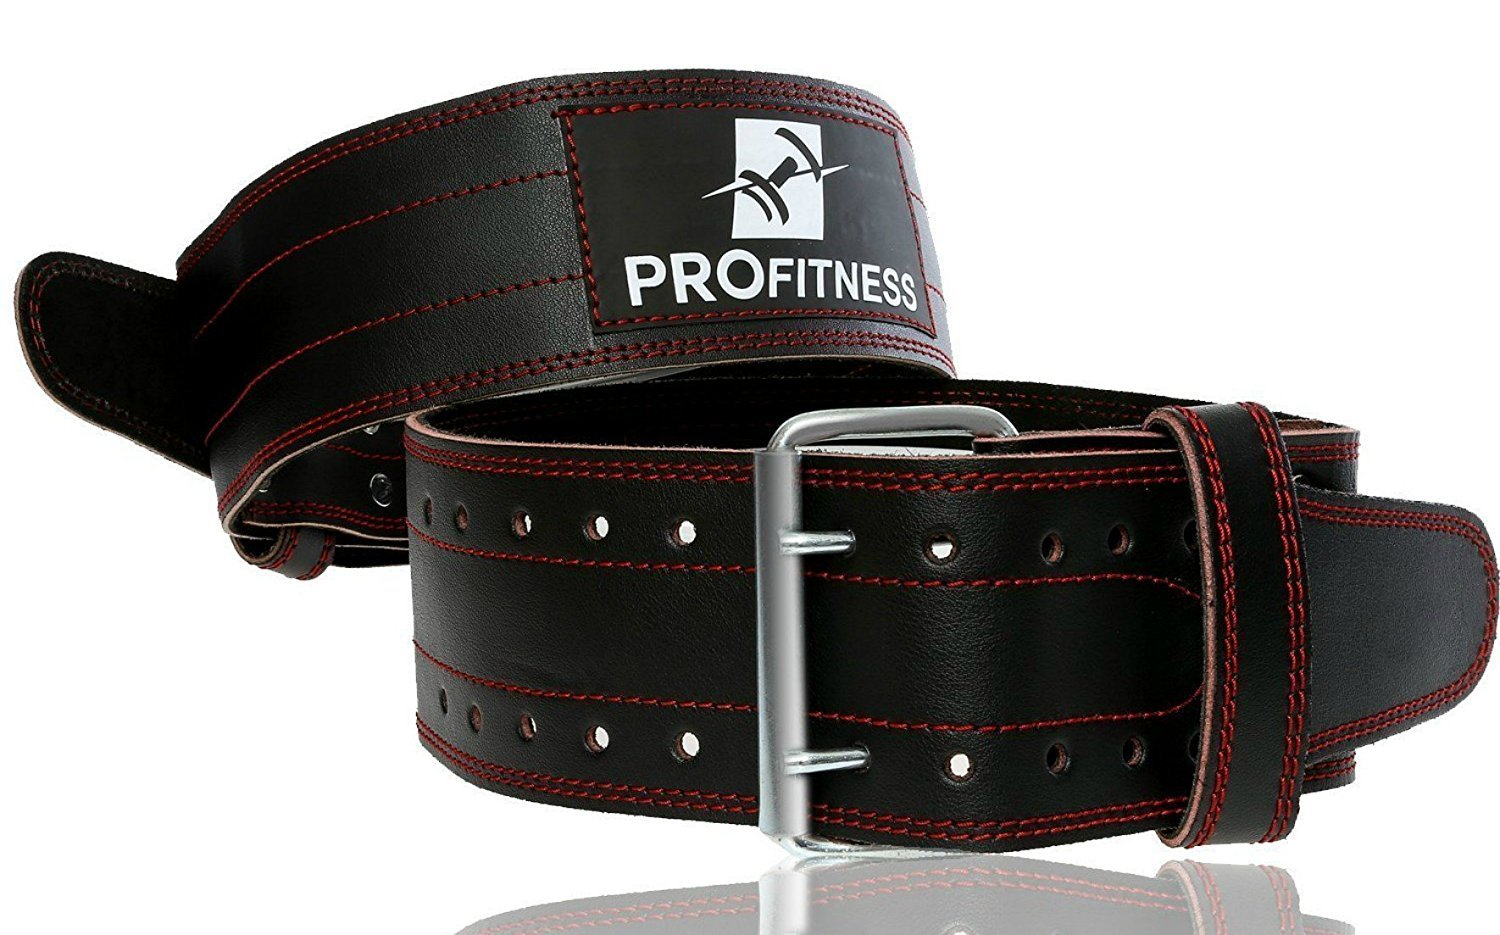 ProFitness Genuine Leather Workout Belt (4 Inches Wide) - Proper Weight Lifting Form